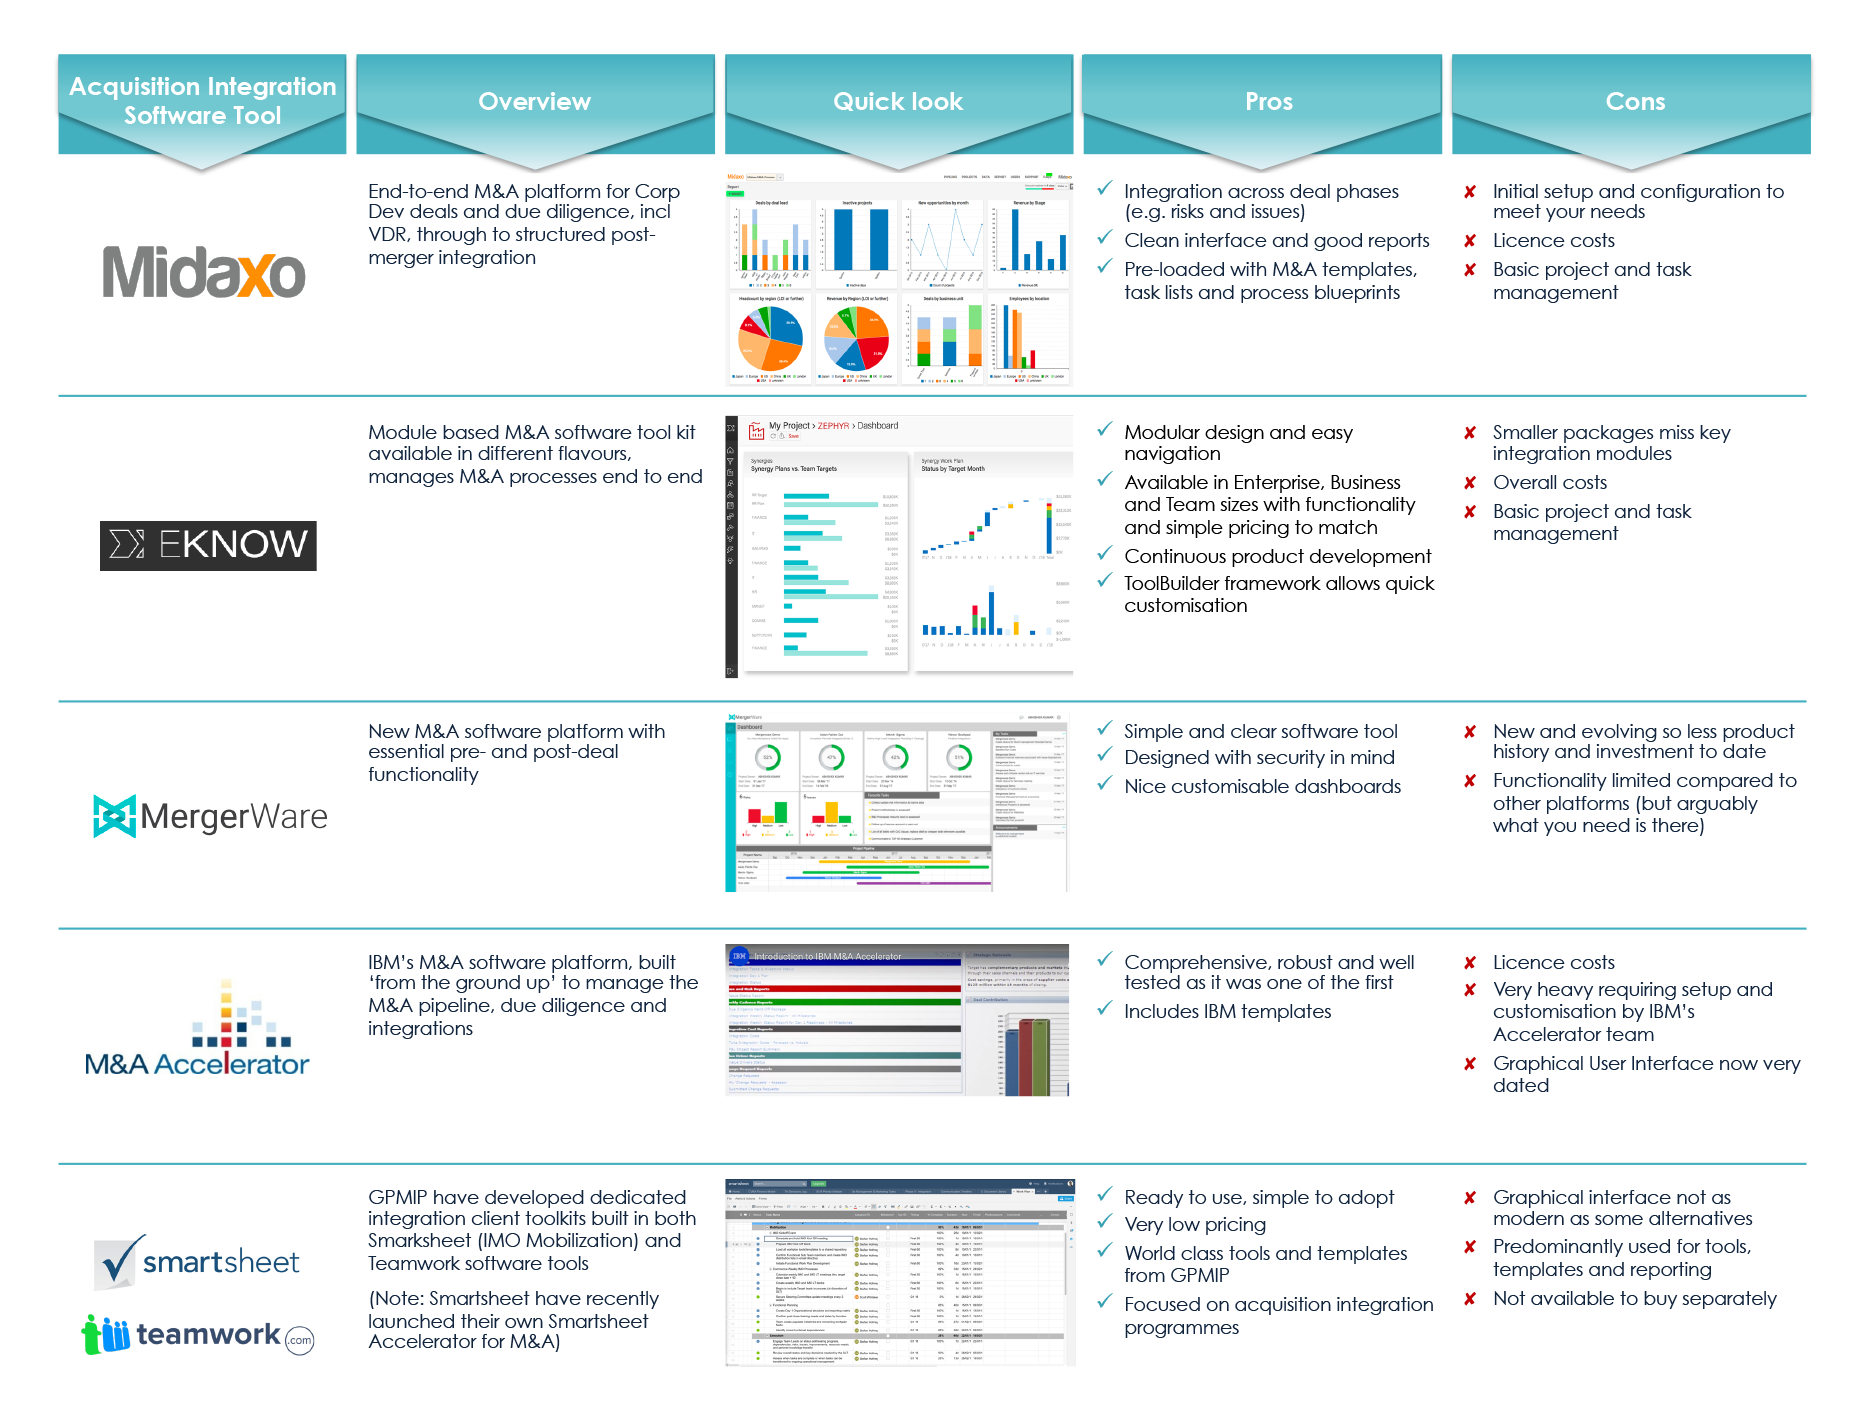 The Guide to M&A Integration Software Tools 2